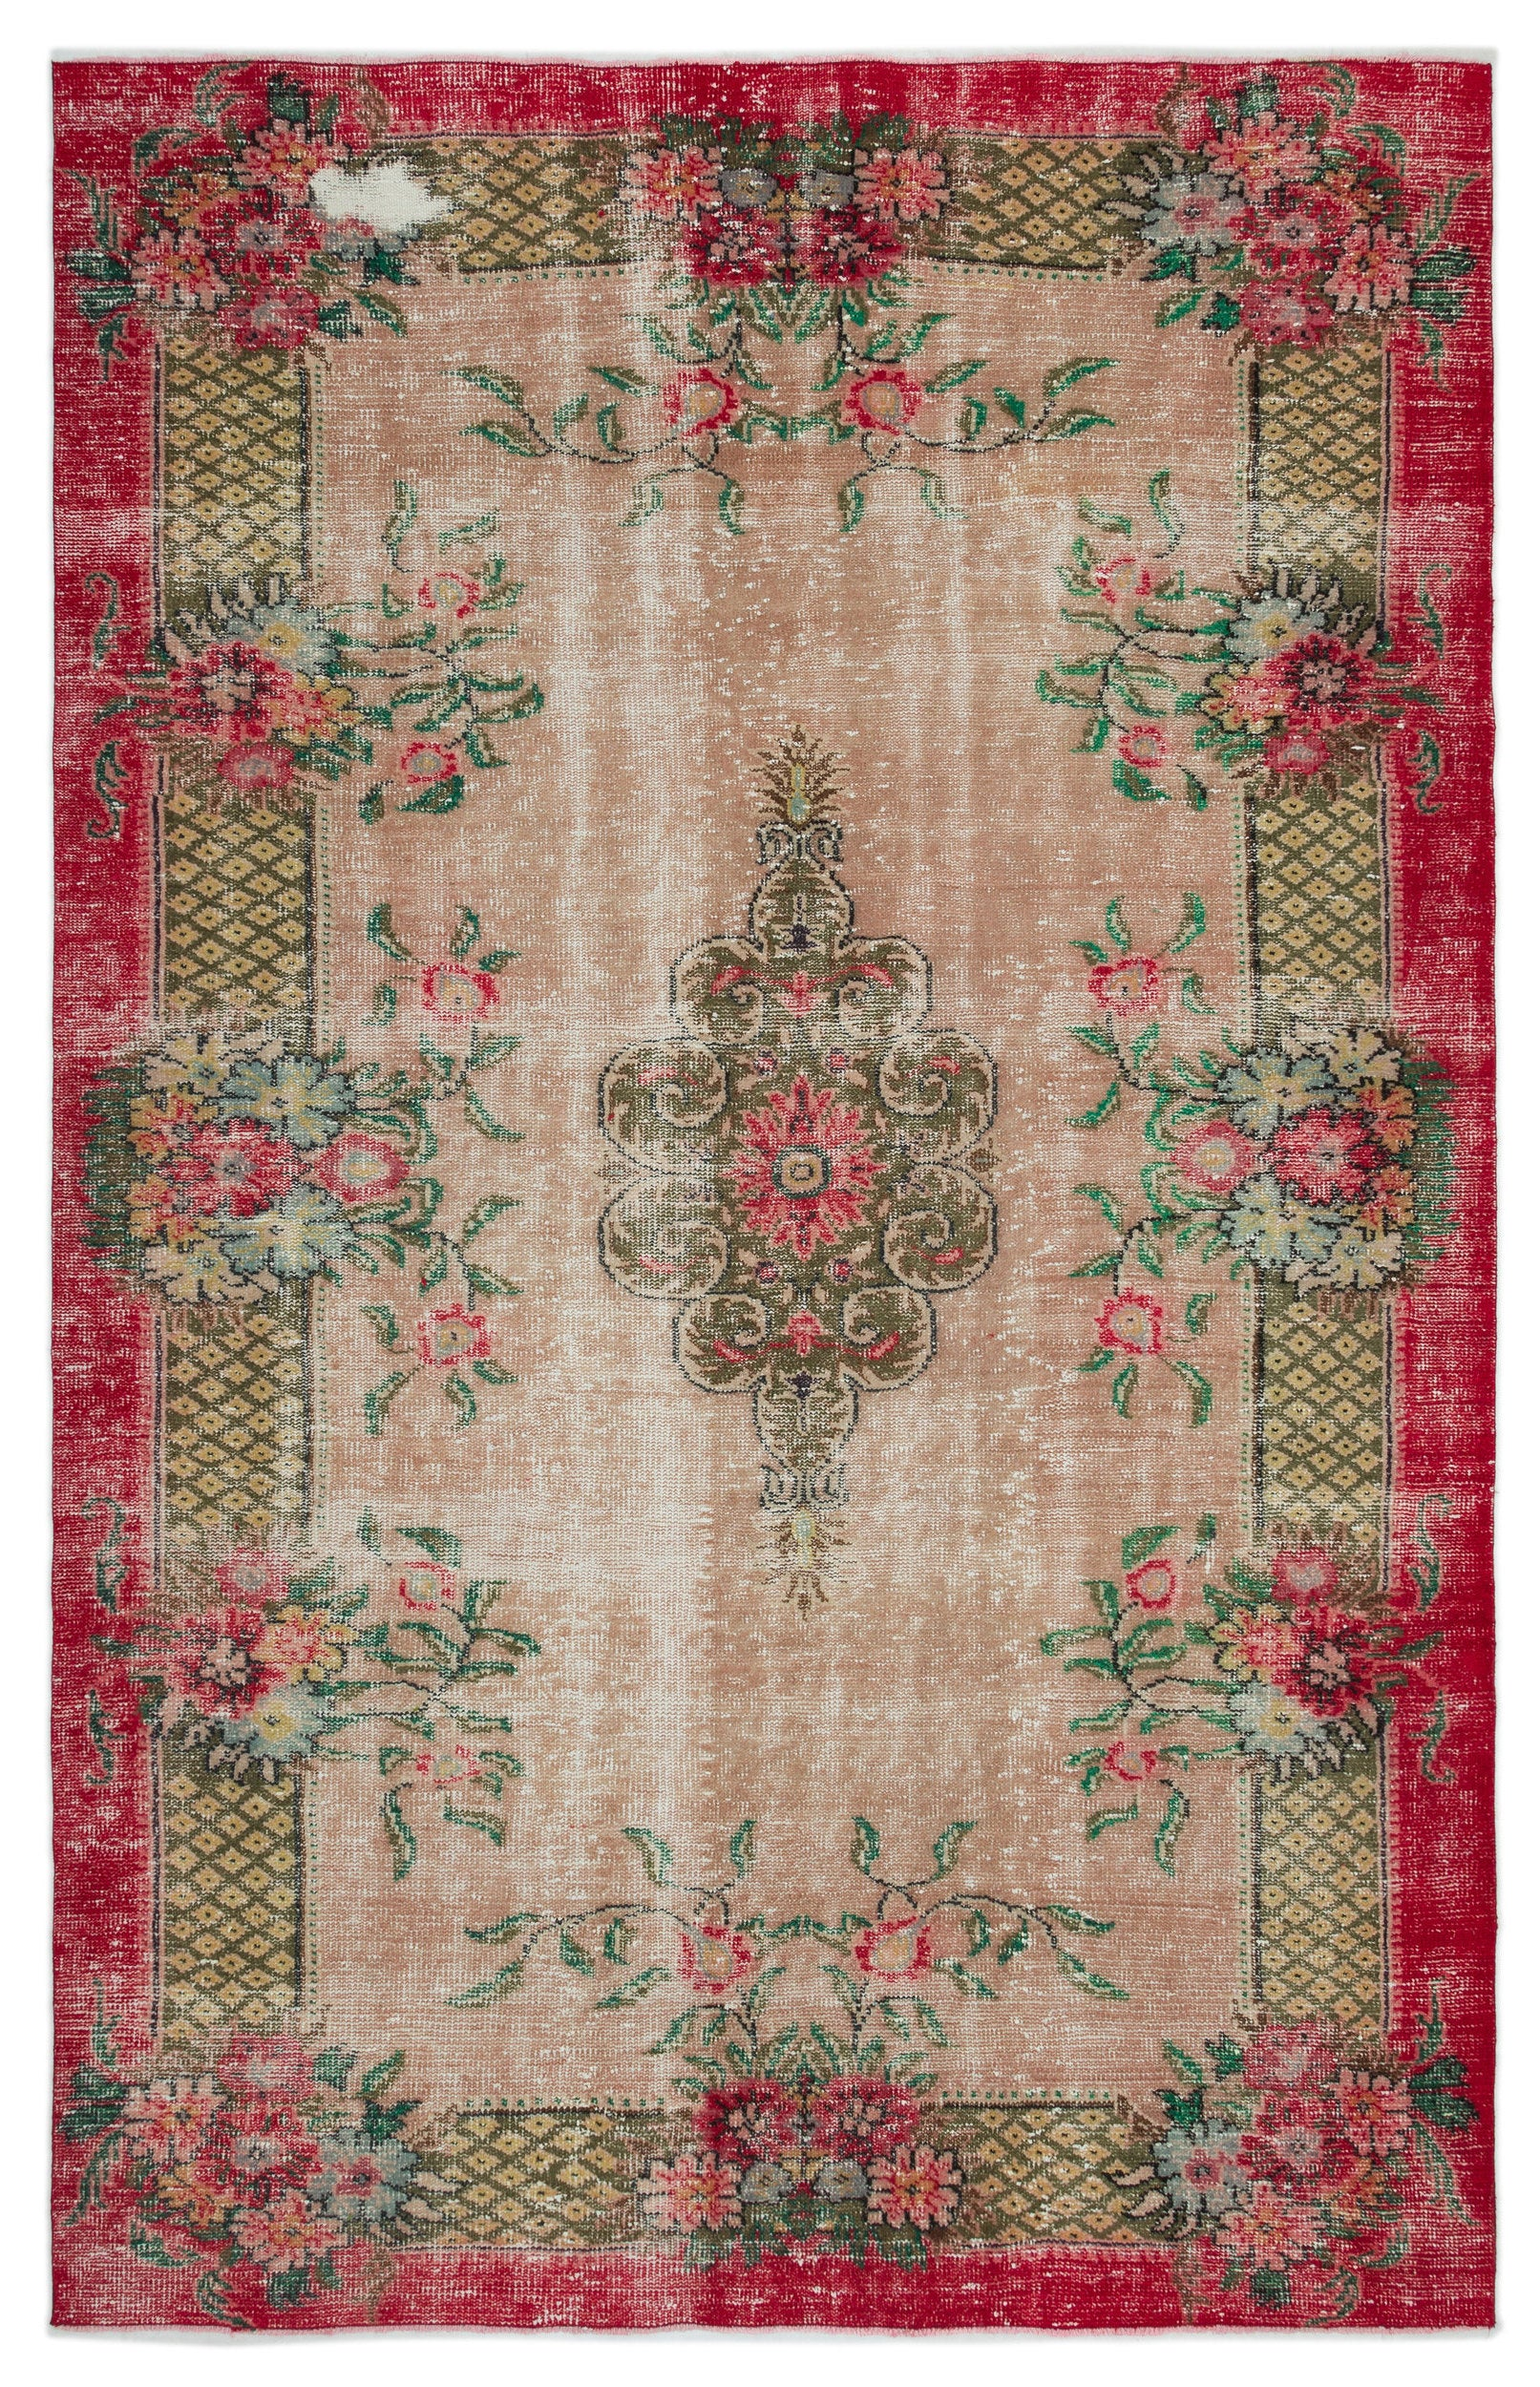 Retro Over Dyed Vintage Rug 6'4'' x 9'9'' ft 193 x 298 cm